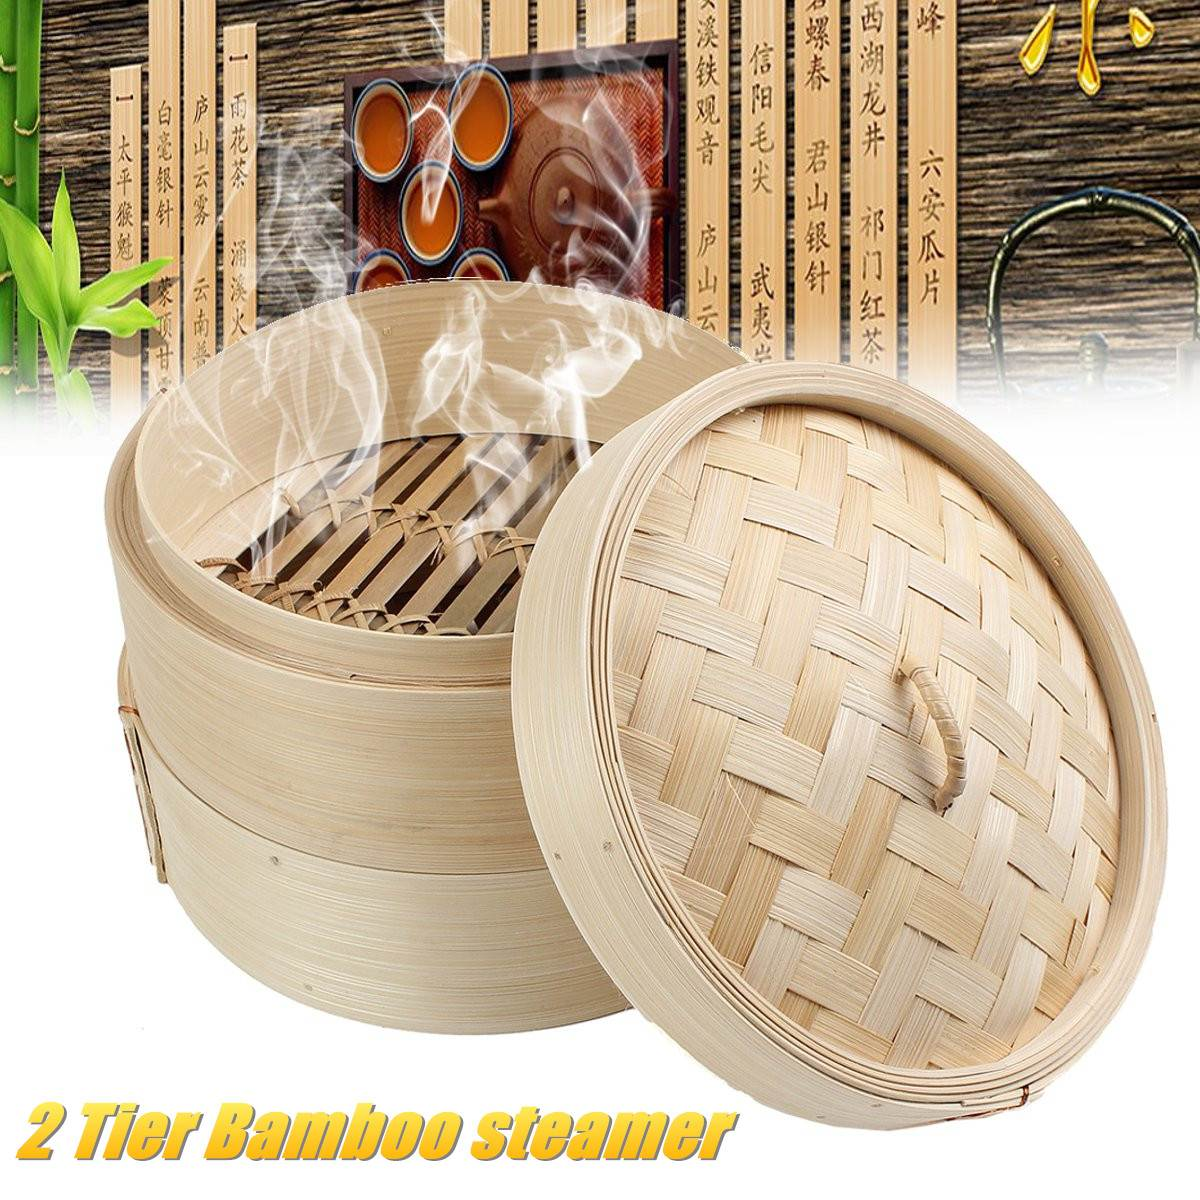 Bamboo Steamer Basket-Tray Cooking-Tool Food-Dumplings Vegetable Kitchen Fish-Rice